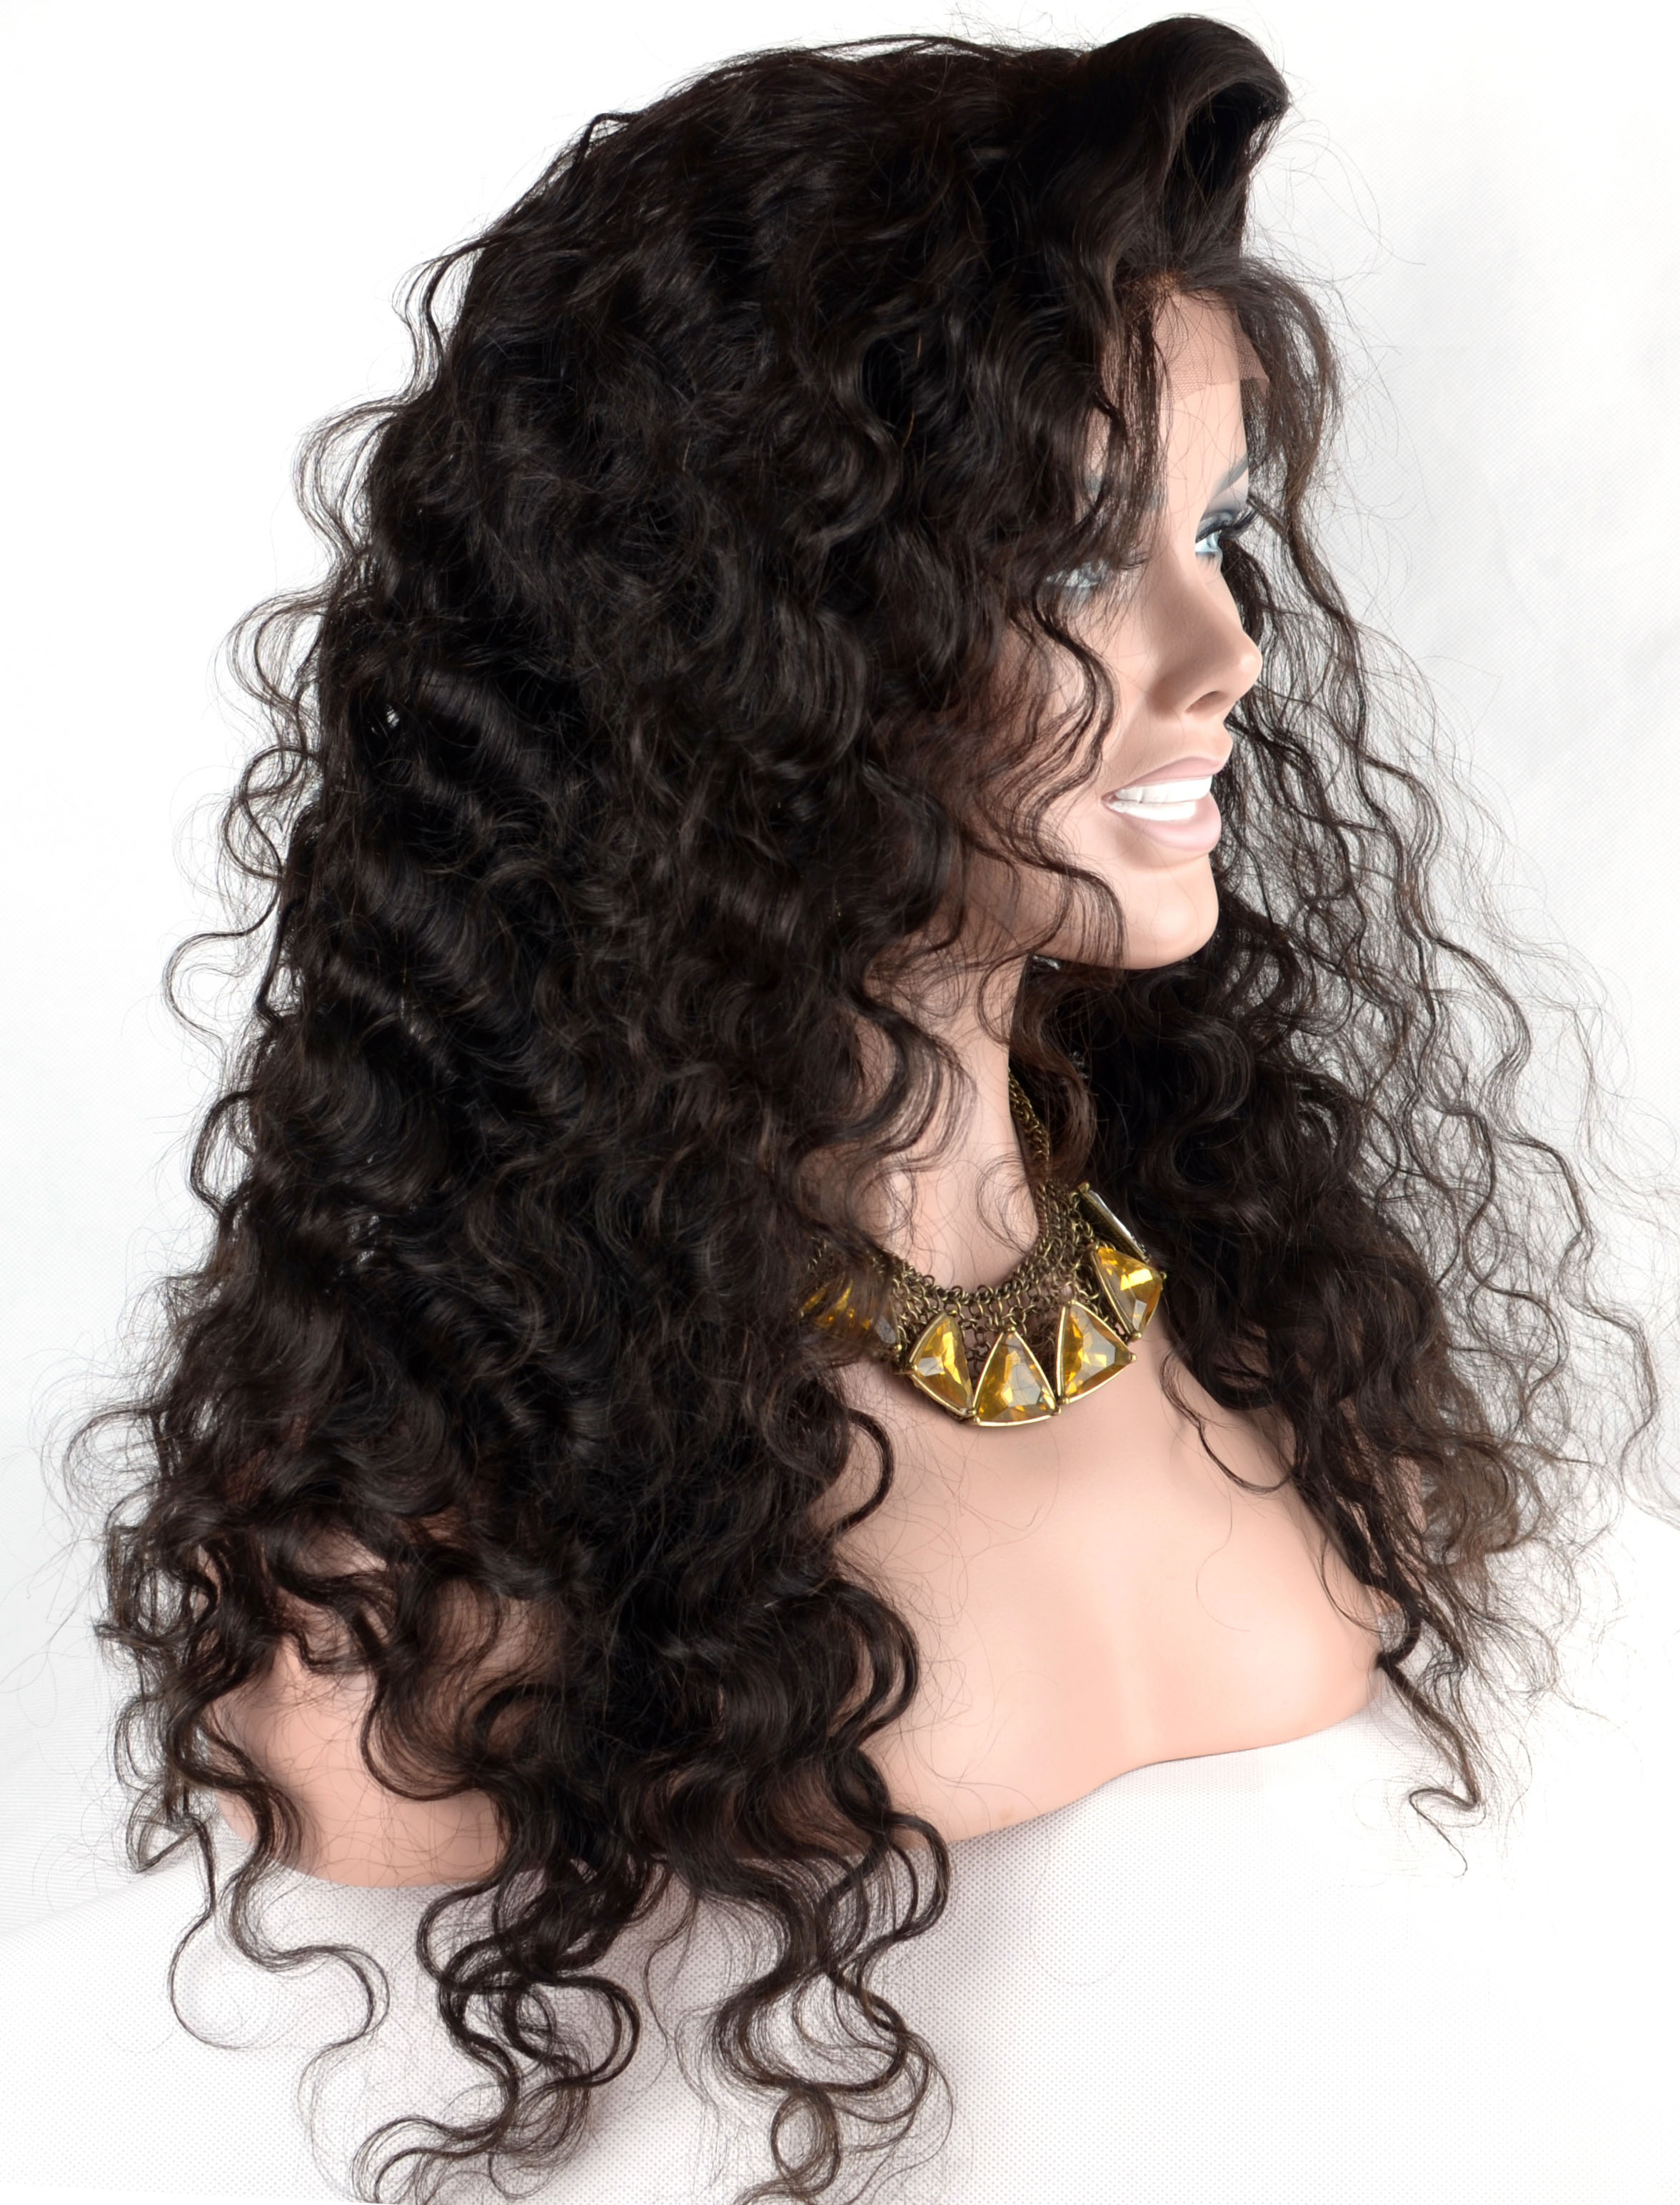 Lace Wigs Virgin Hair Silk Top Full Lace Wig